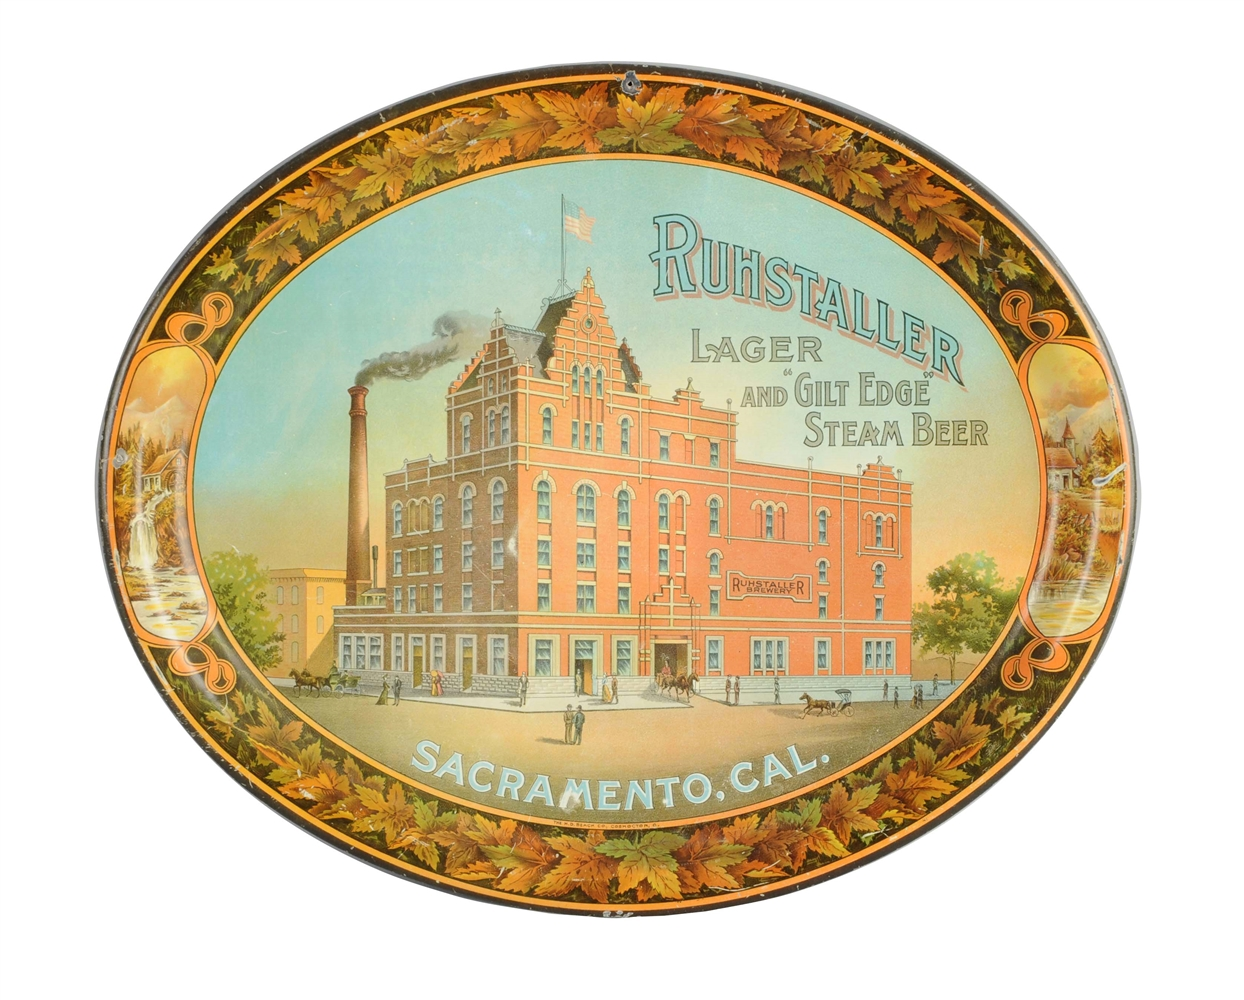 Ruhstaller Lager Brewery Steam Beer Serving Tray.